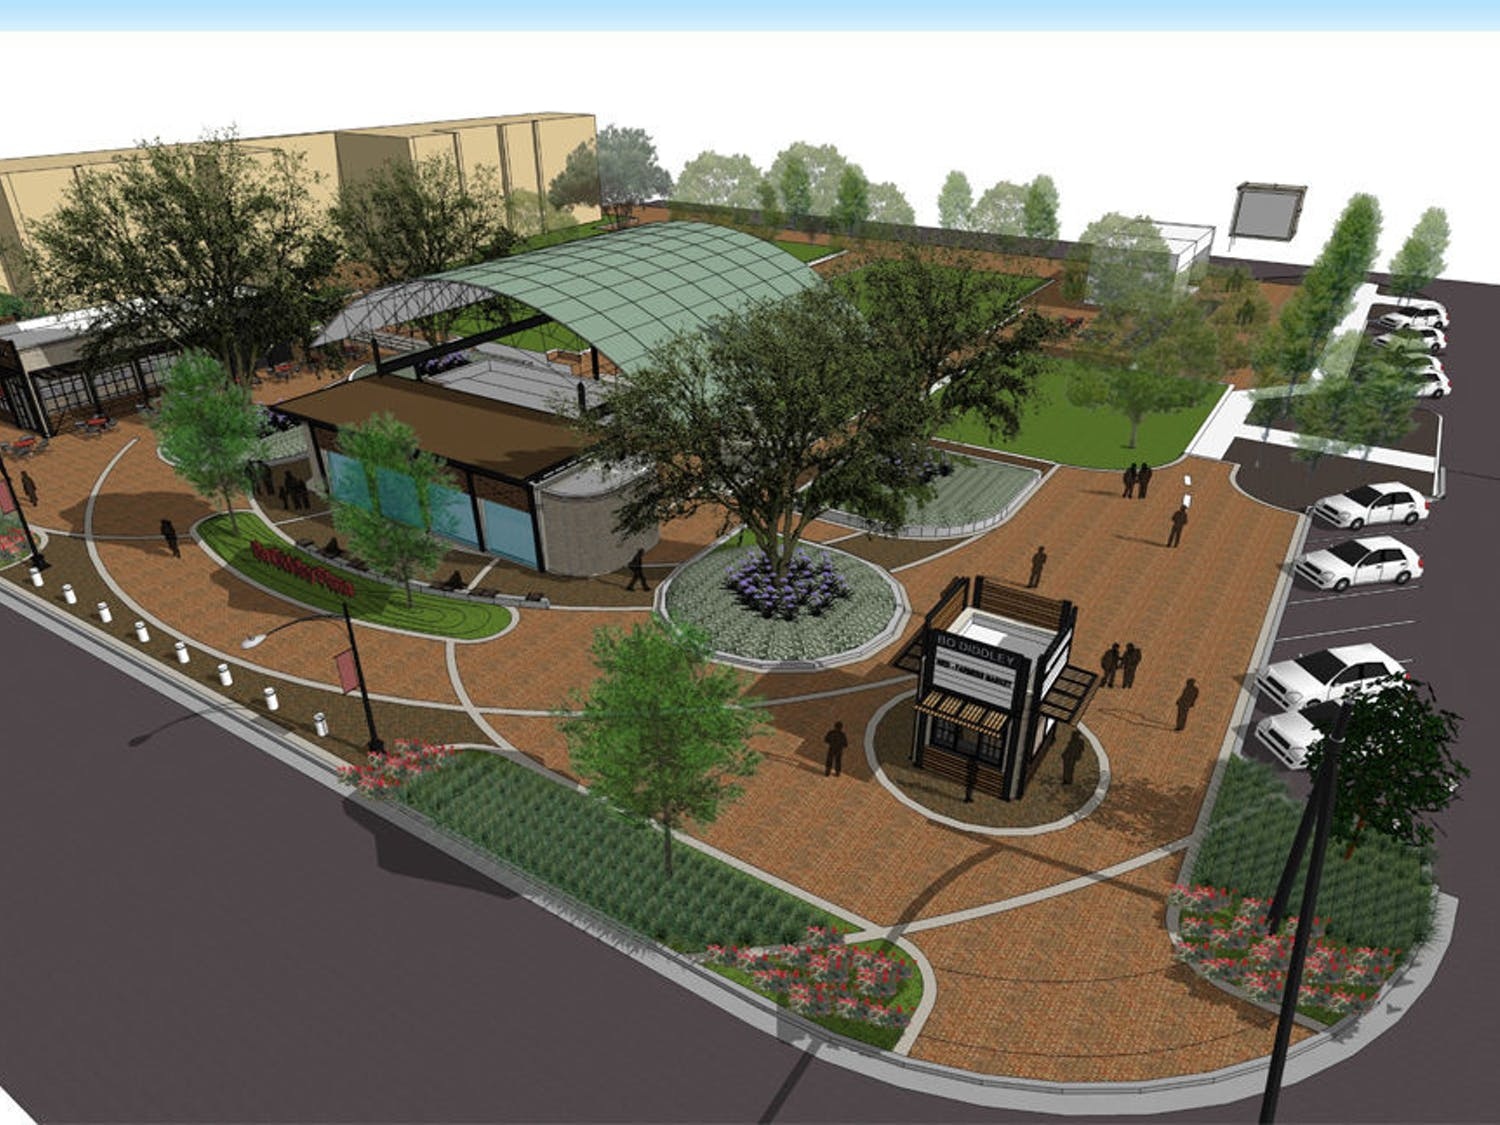 Pictured is a rendering of how Bo Diddley Community Plaza will look after its about $1.86 million renovation. The plaza will close on March 1, and renovations are expected to take one year to complete.